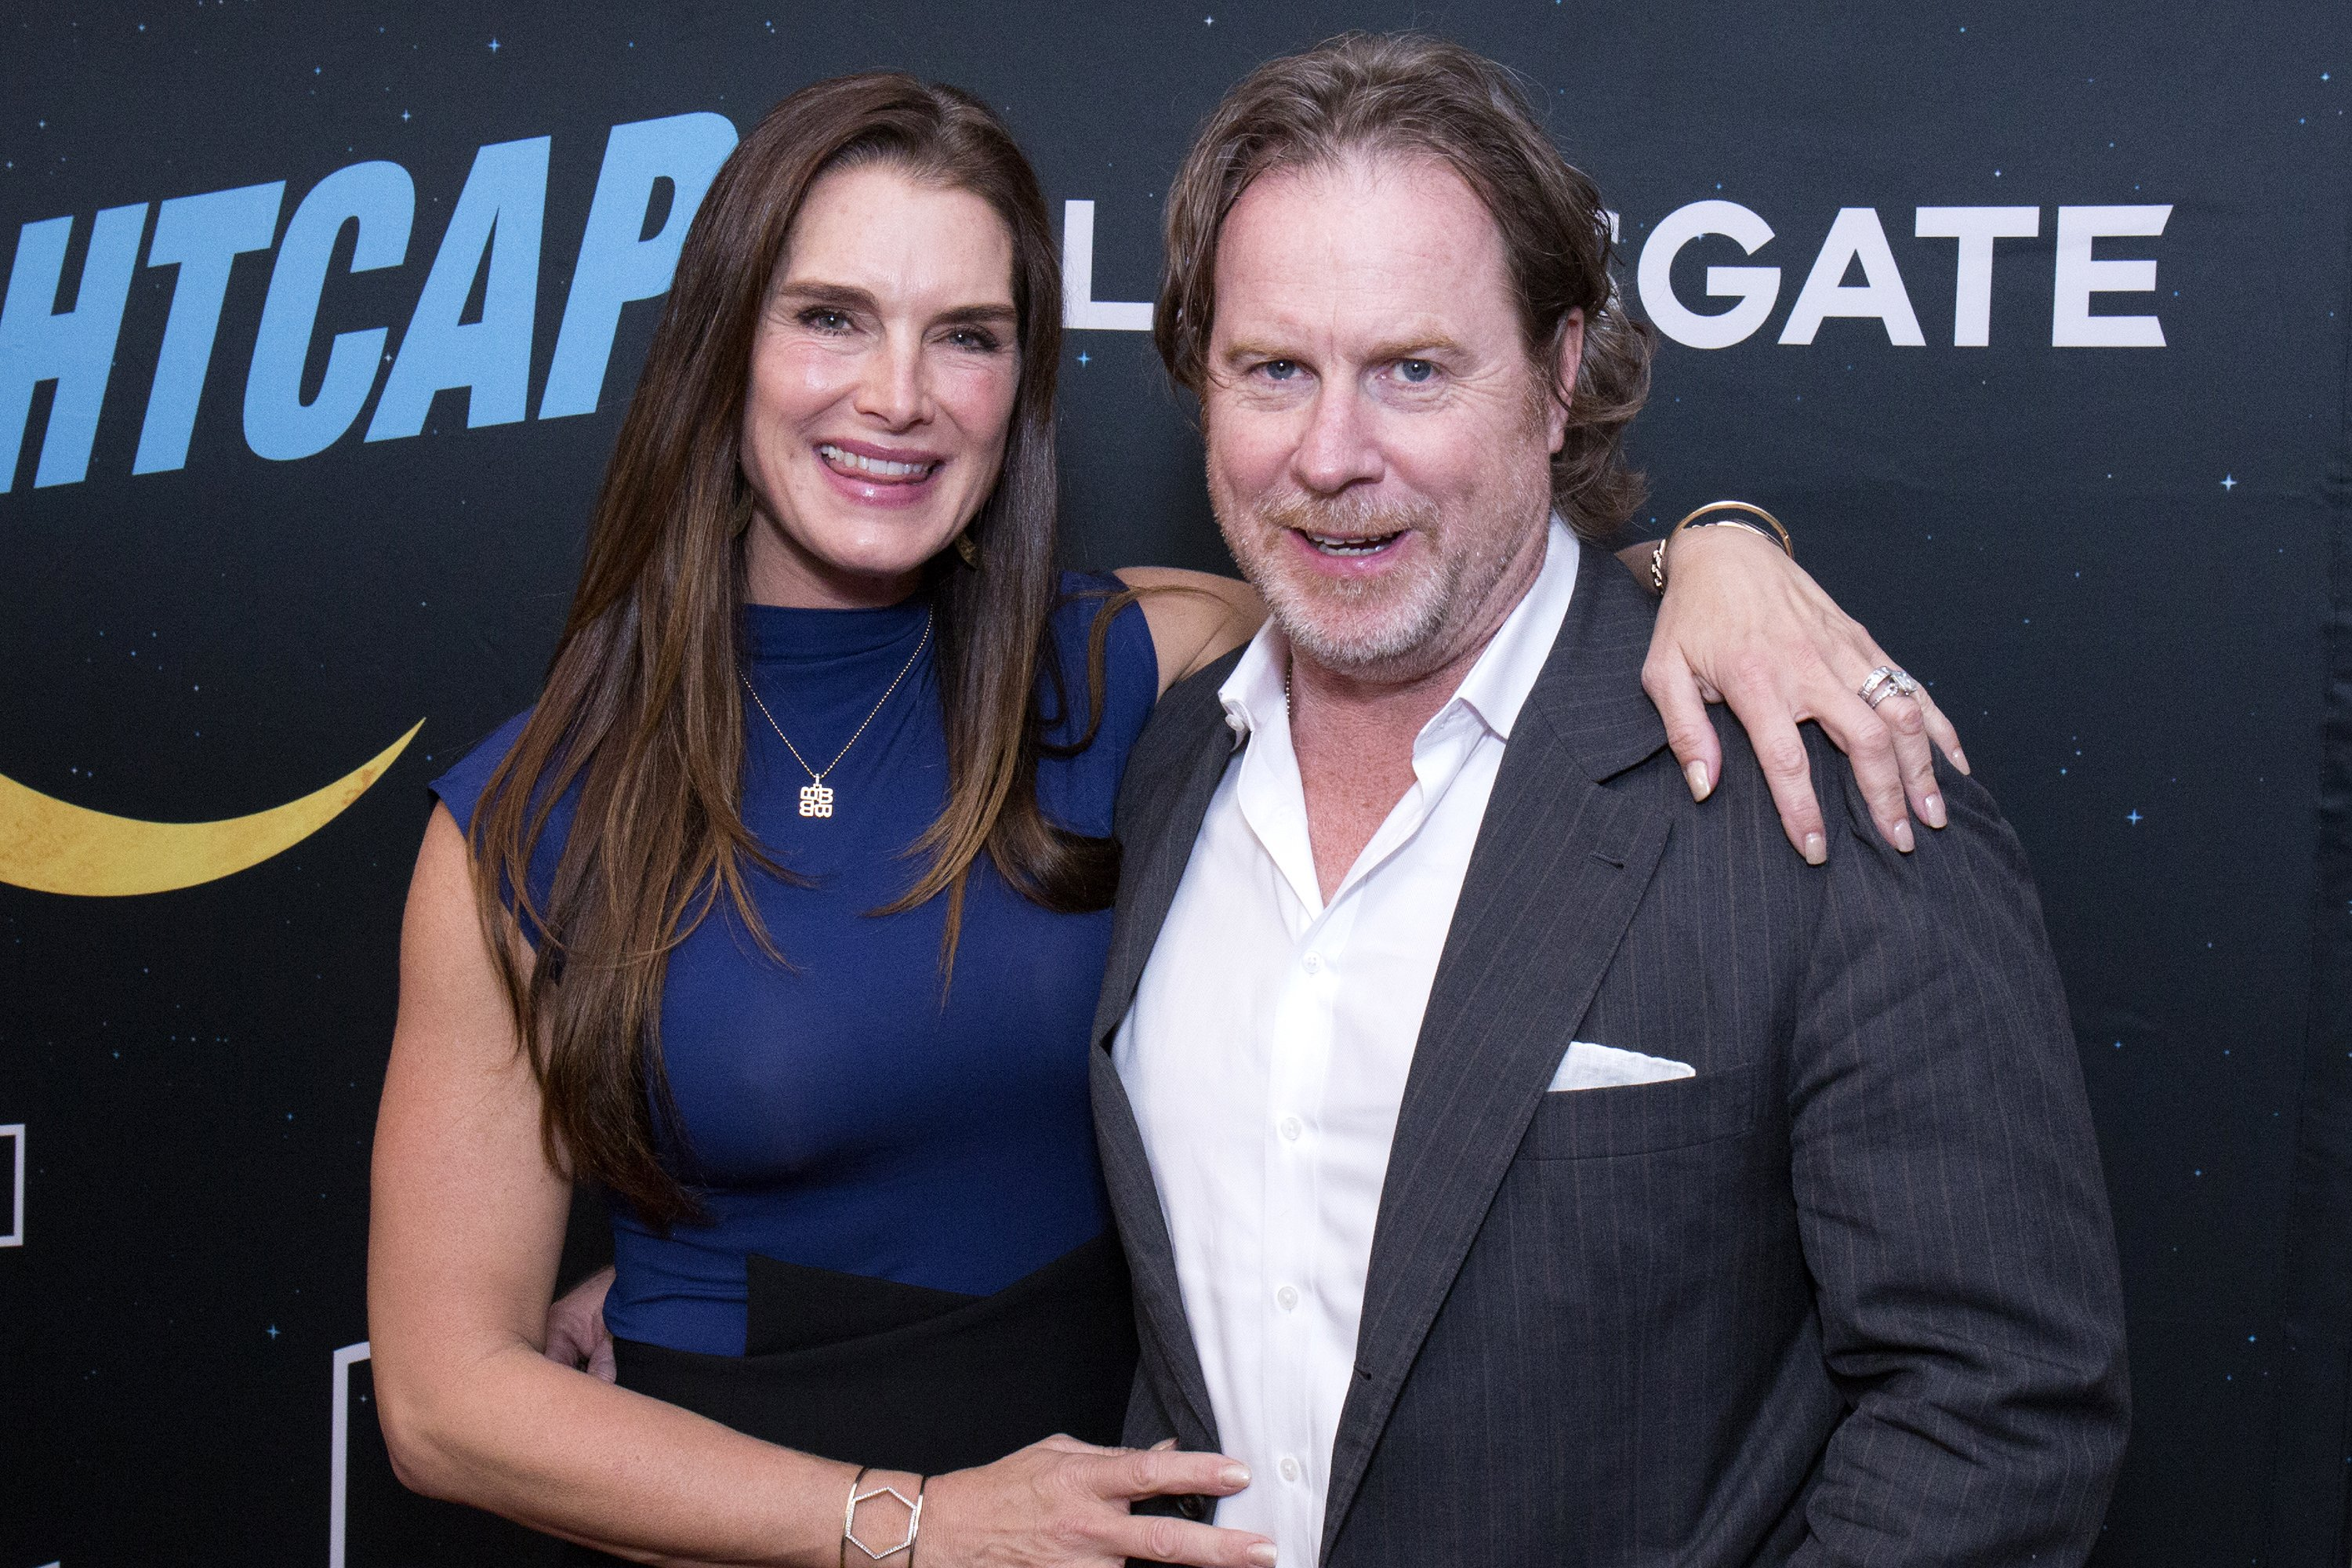 """Brooke Shields and Chris Henchy attend """"Nightcap"""" Season 2 New York Premiere Party on June 6, 2017, in New York City. 